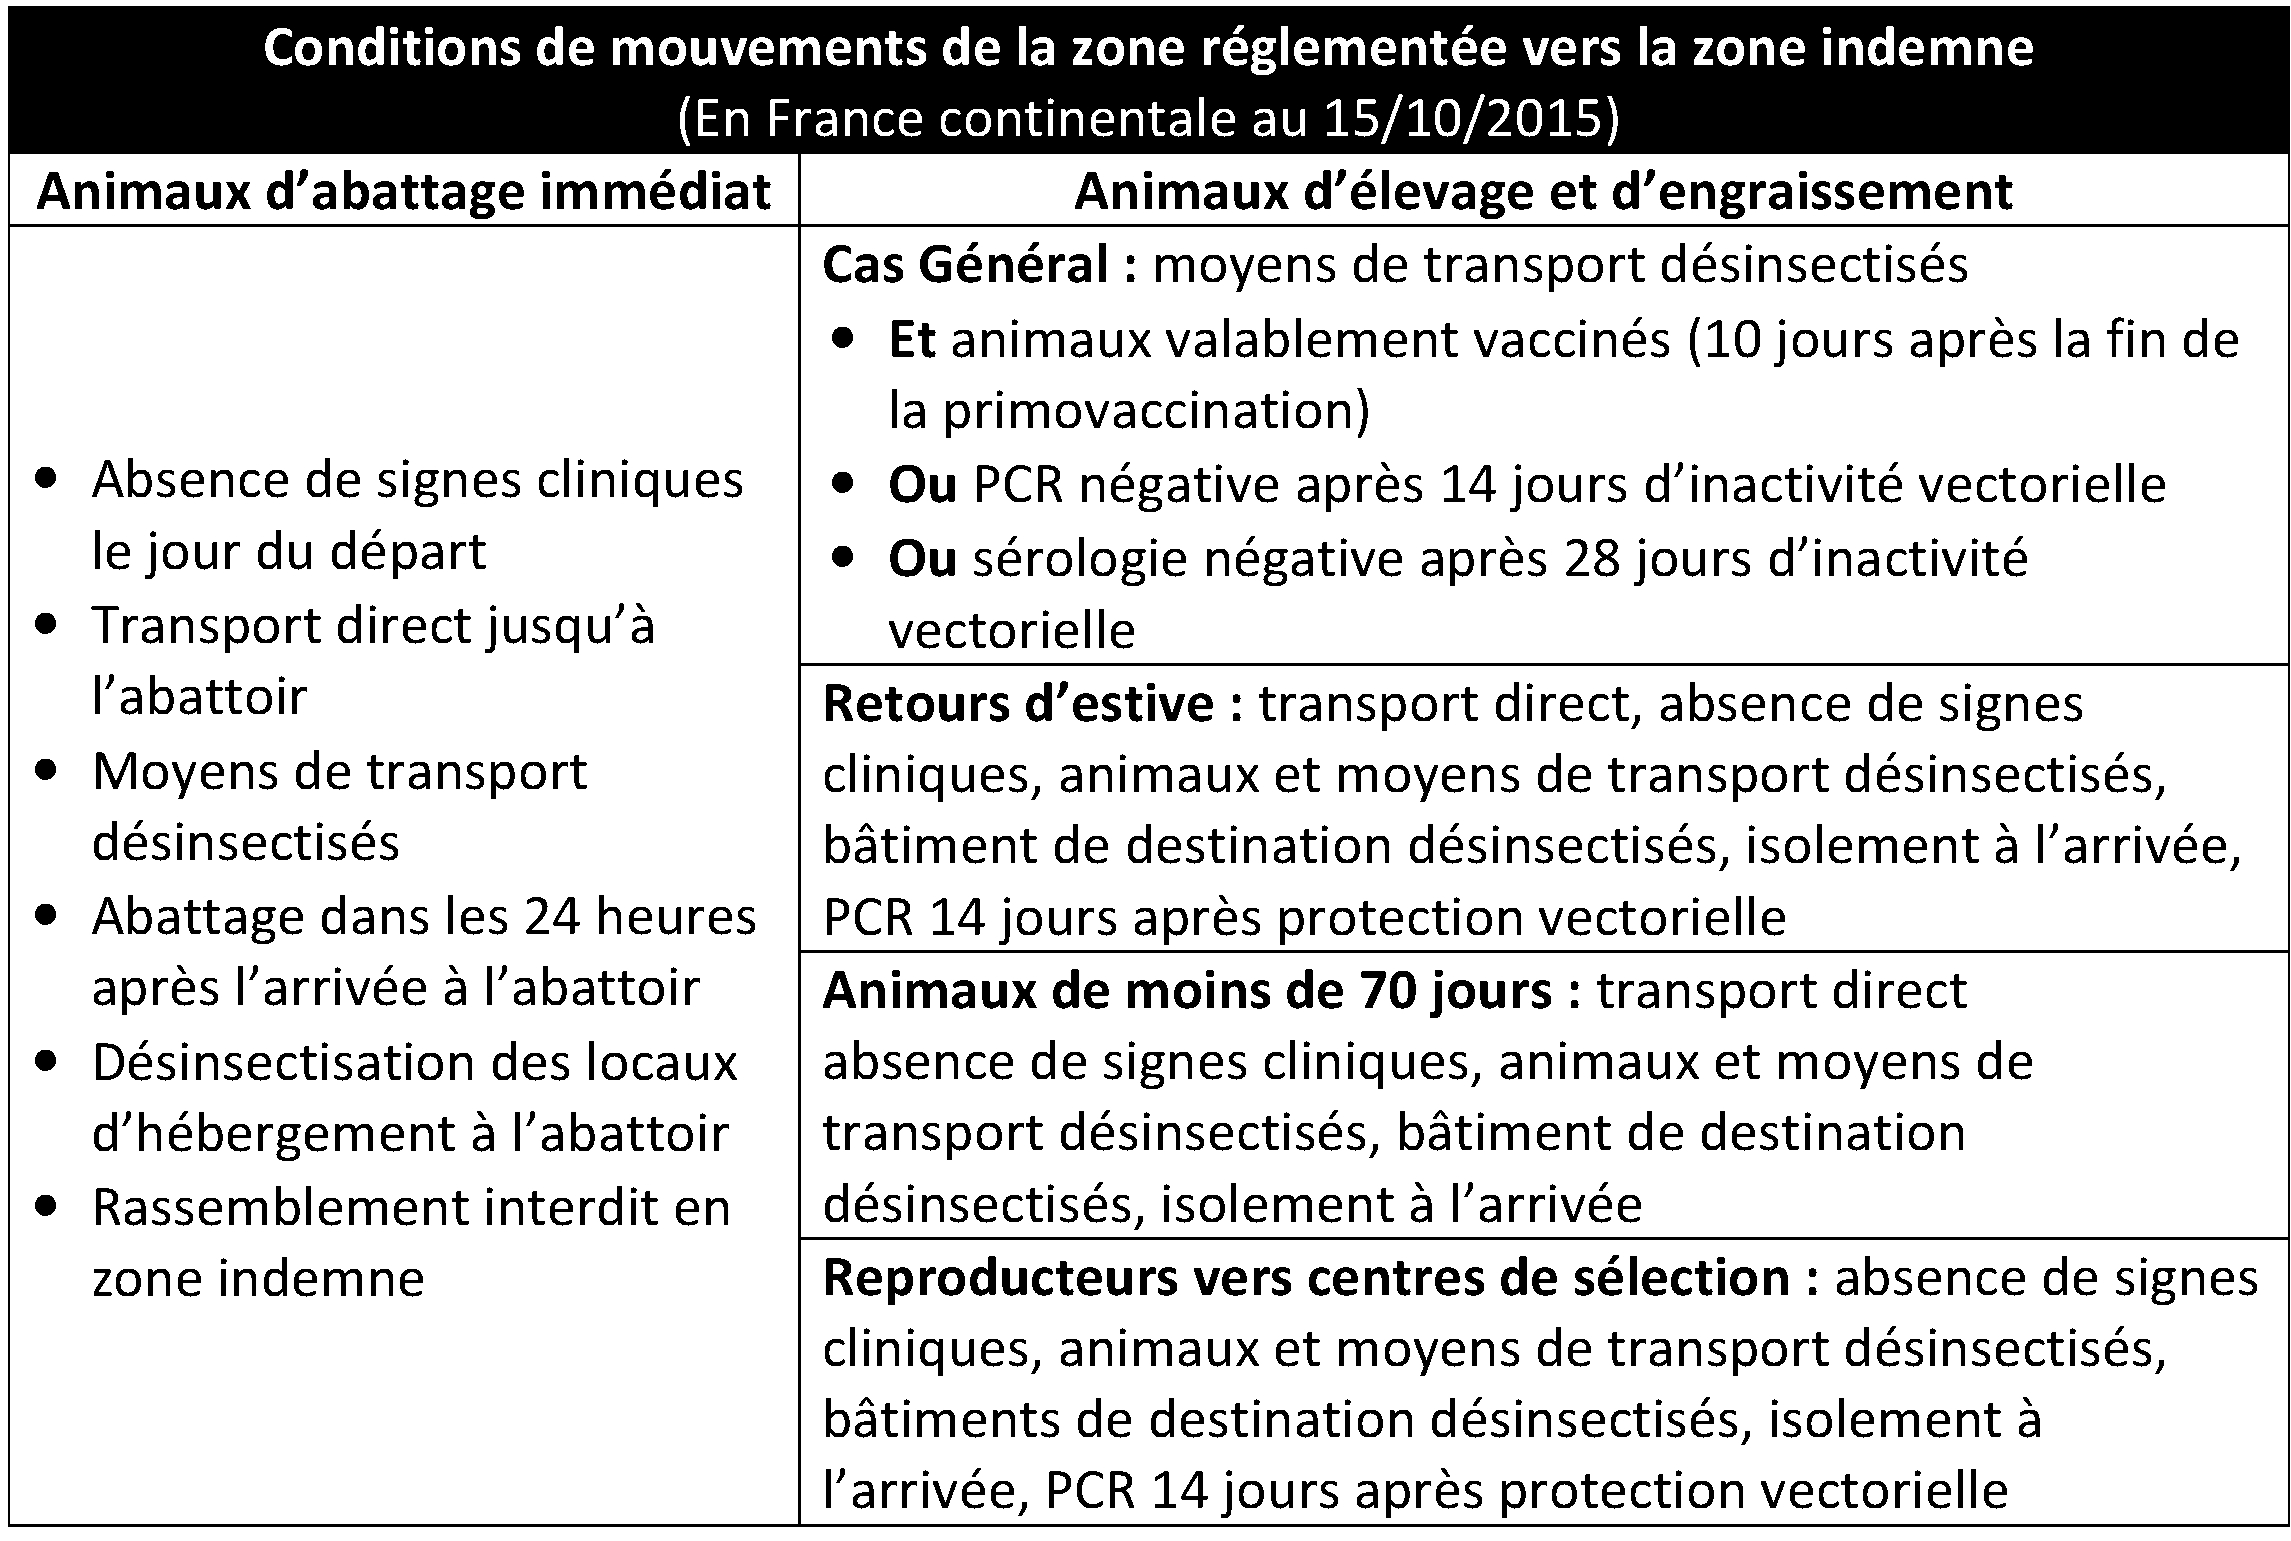 http://www.gdscreuse.fr/wp-content/uploads/2015/10/2015-10-15-Conditions-de-mouvements-de-ZR-vers-ZI.jpg